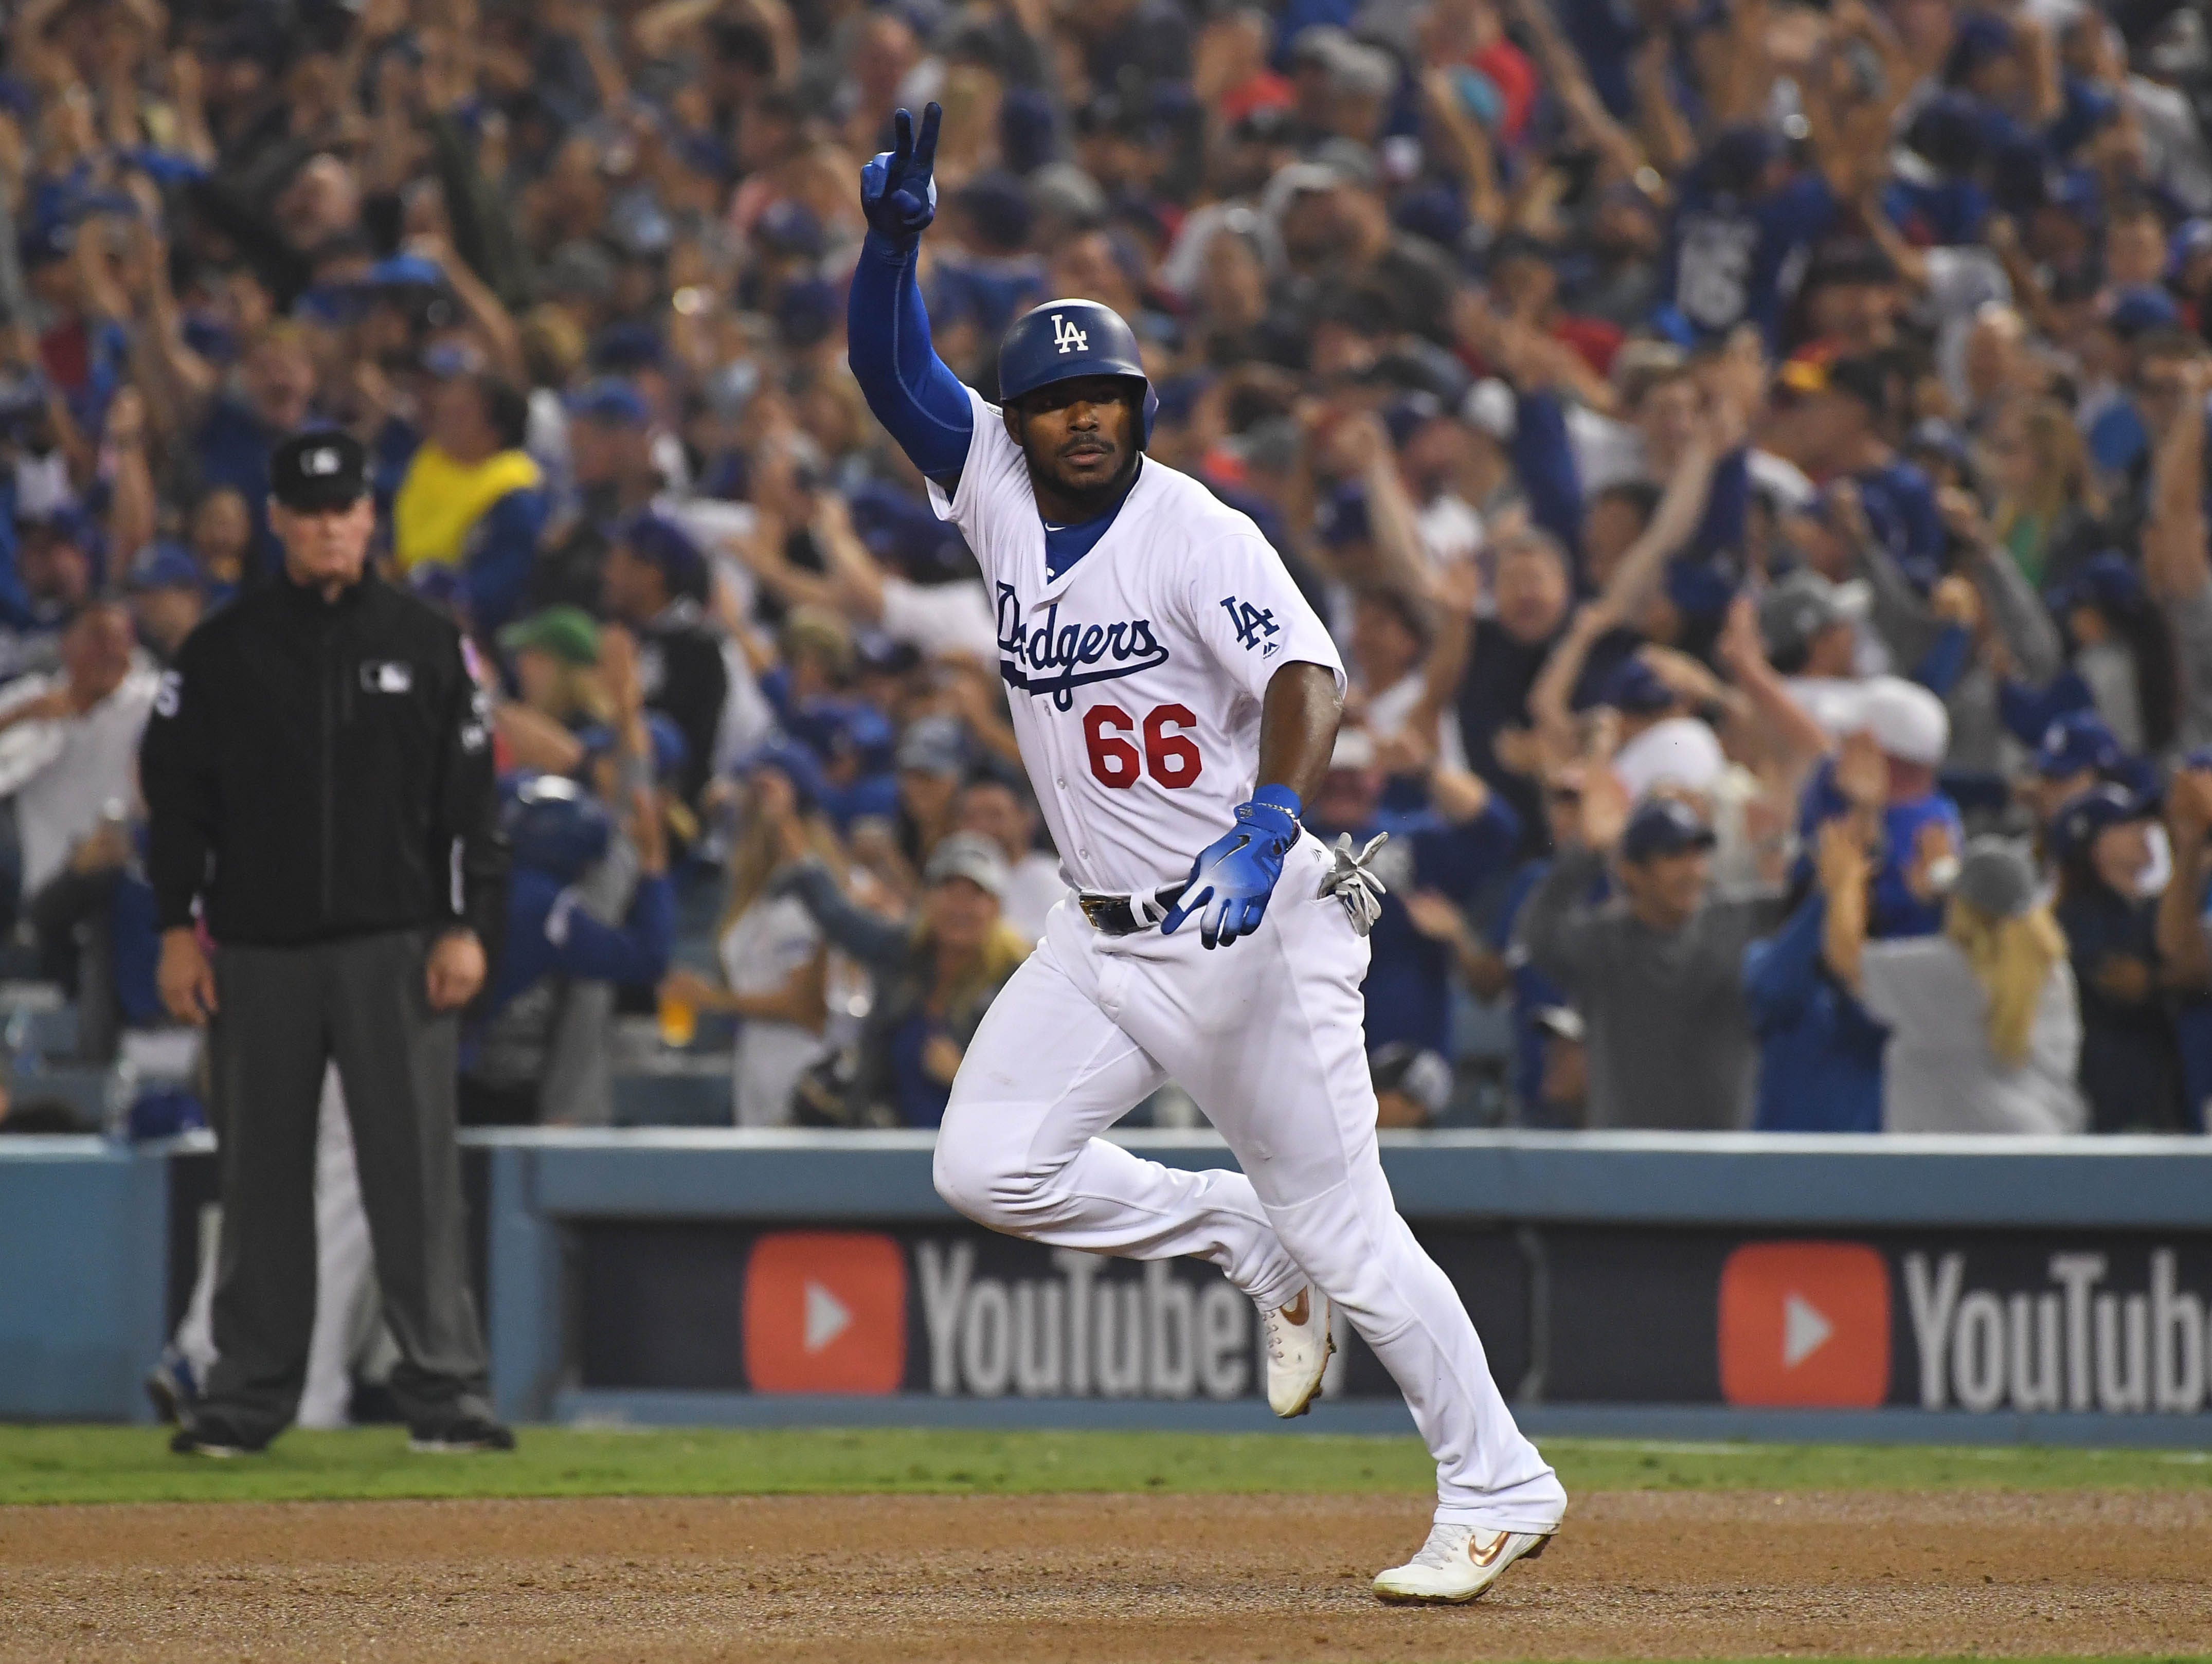 Game 4 at Dodger Stadium: Yasiel Puig rounds the bases after his three-run homer in the sixth.